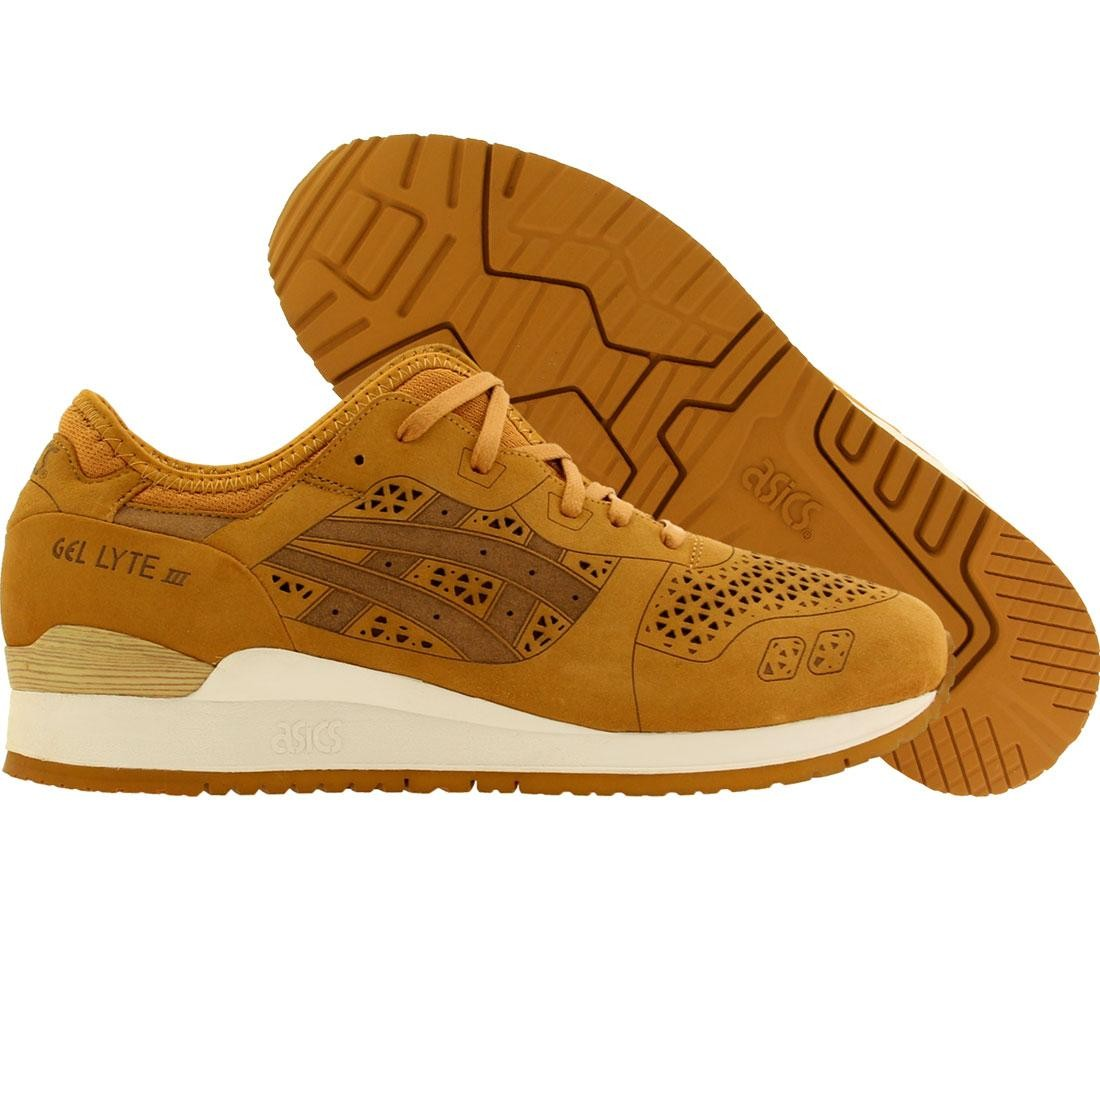 online retailer 85560 c1320 Asics Tiger Men Gel-Lyte III Lasercut - Alpha Pack (tan / tan)